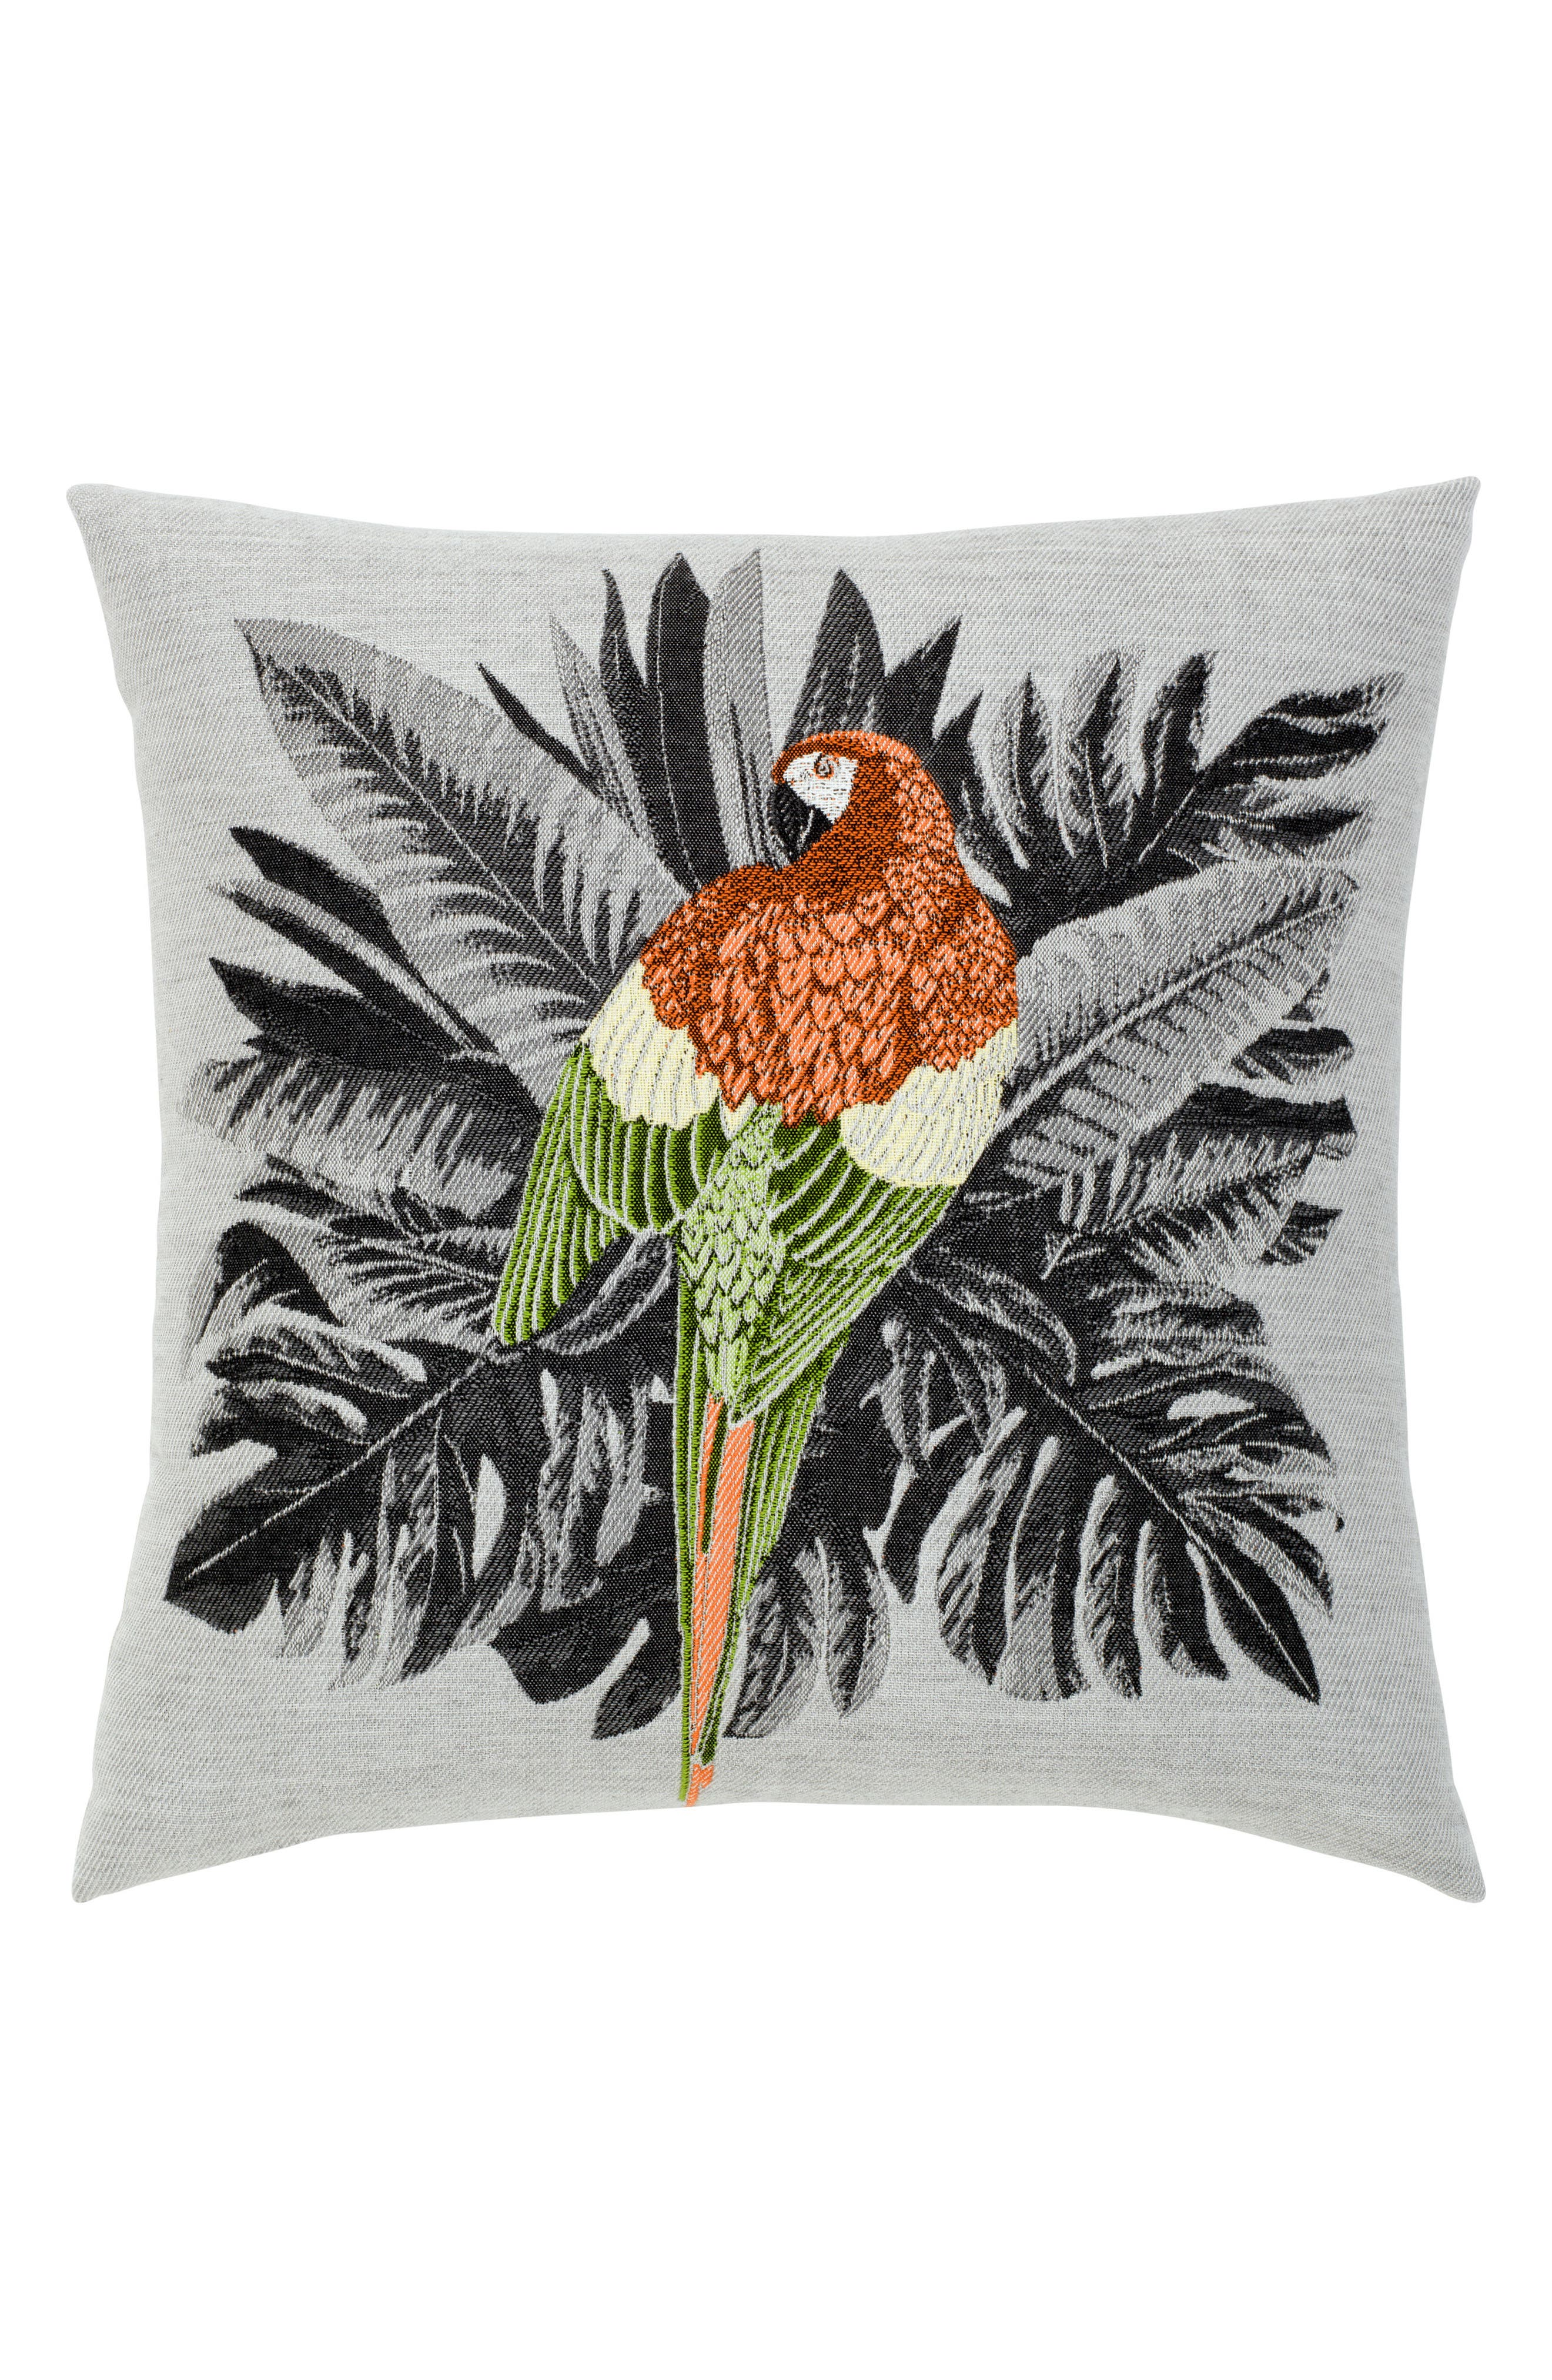 Macaw Indoor/Outdoor Accent Pillow,                         Main,                         color, Grey Multi